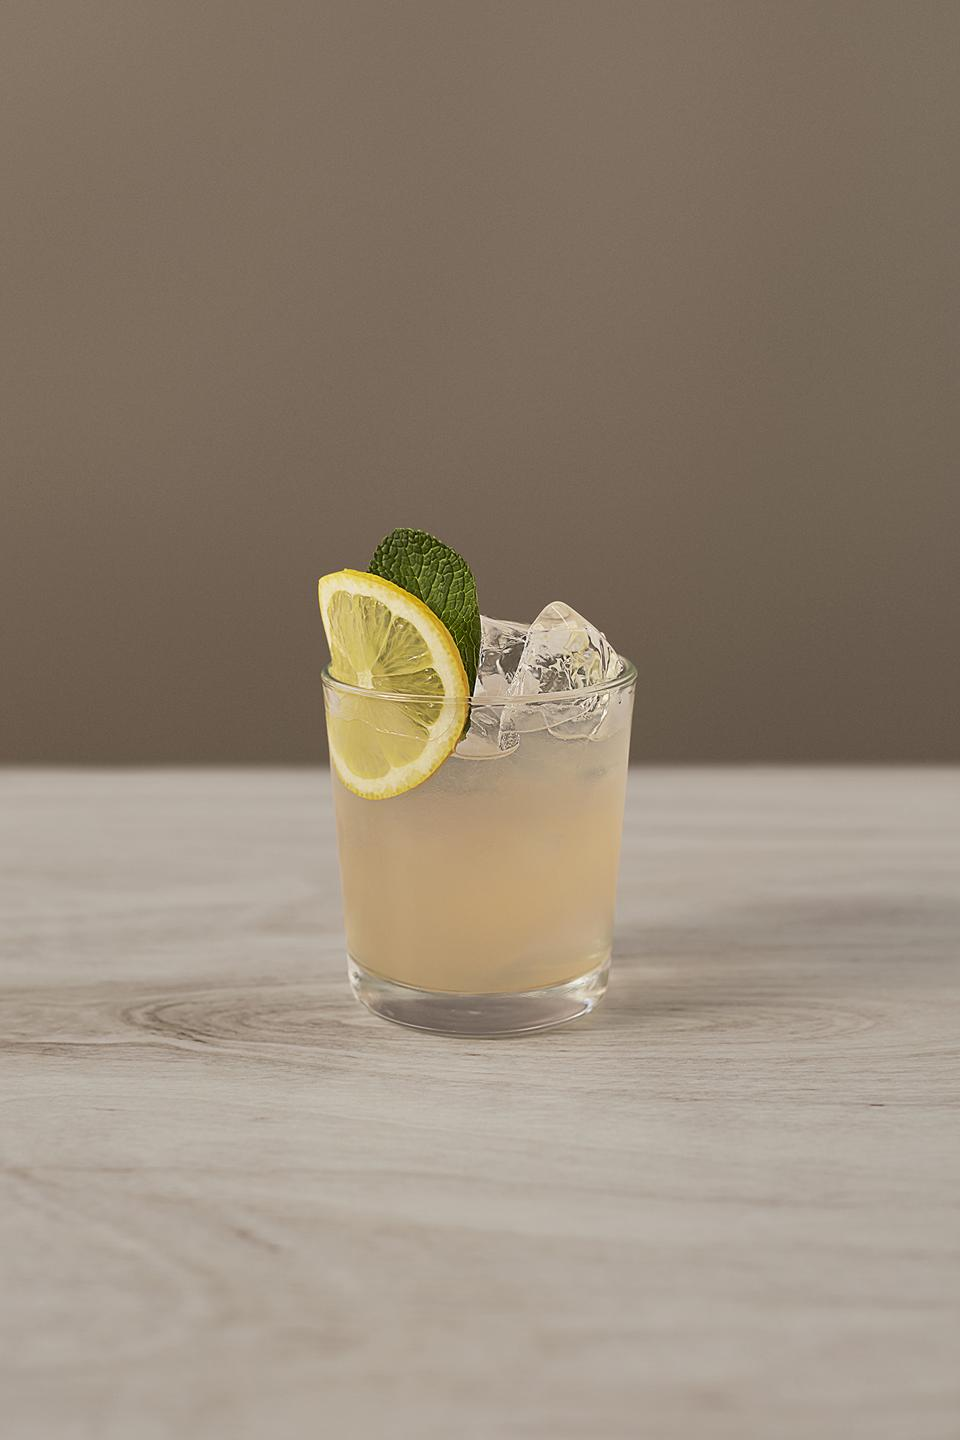 Devon Tarby's ″Souverian″ cocktail.